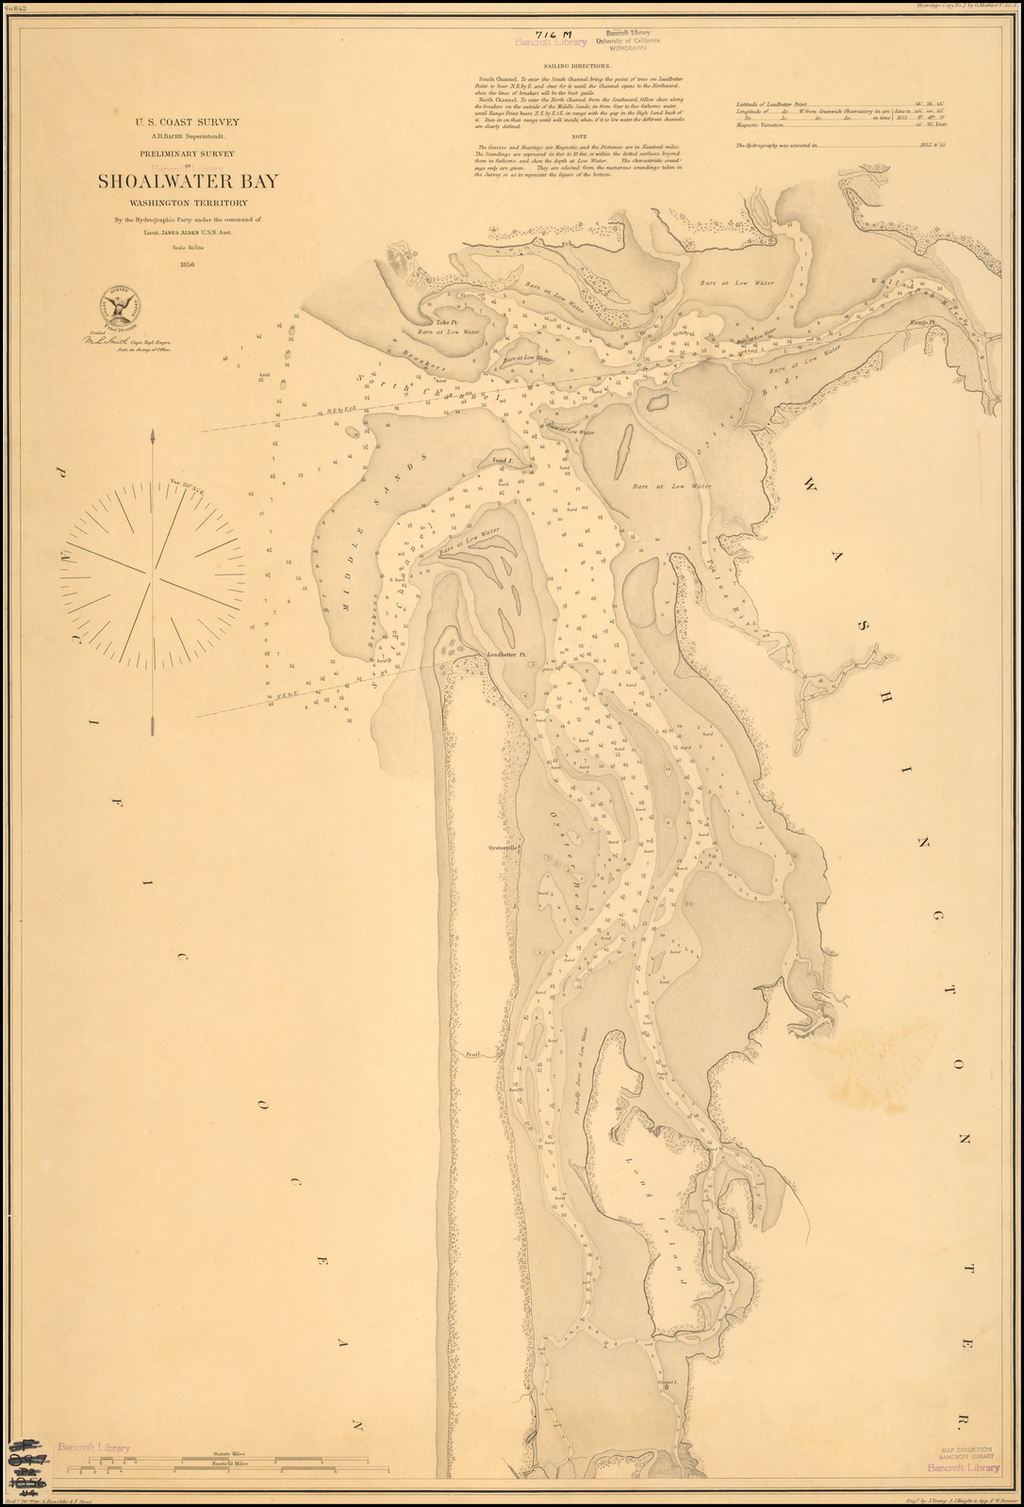 Preliminary Survey of Shoalwater Bay Washington Territory  By the Hydrographic Party under the command of Lieut. James Alden U.S.N. Asst.  . . . 1856 By United States Coast Survey / George Davidson